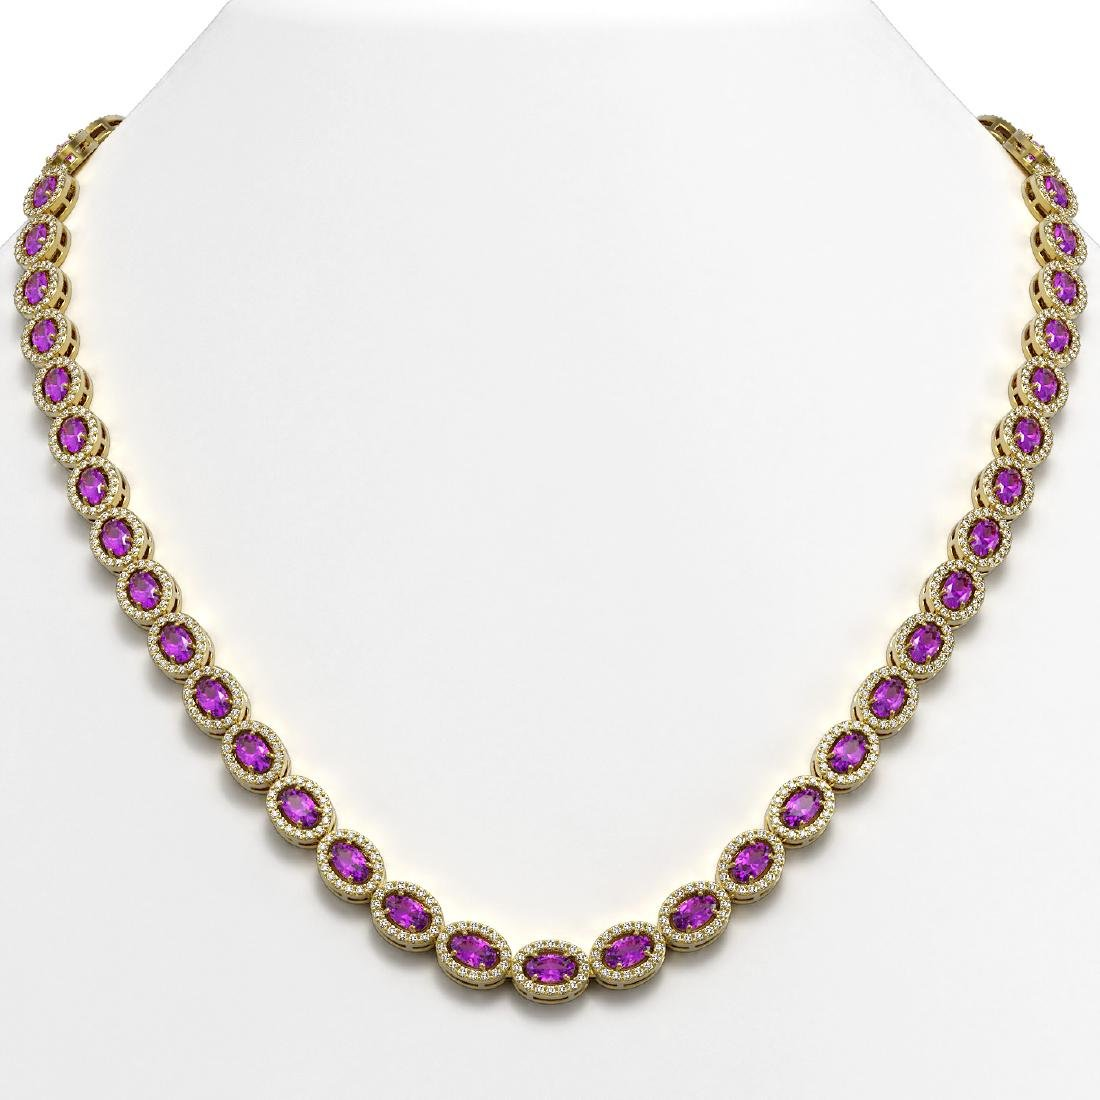 20.62 CTW Amethyst & Diamond Halo Necklace 10K Yellow